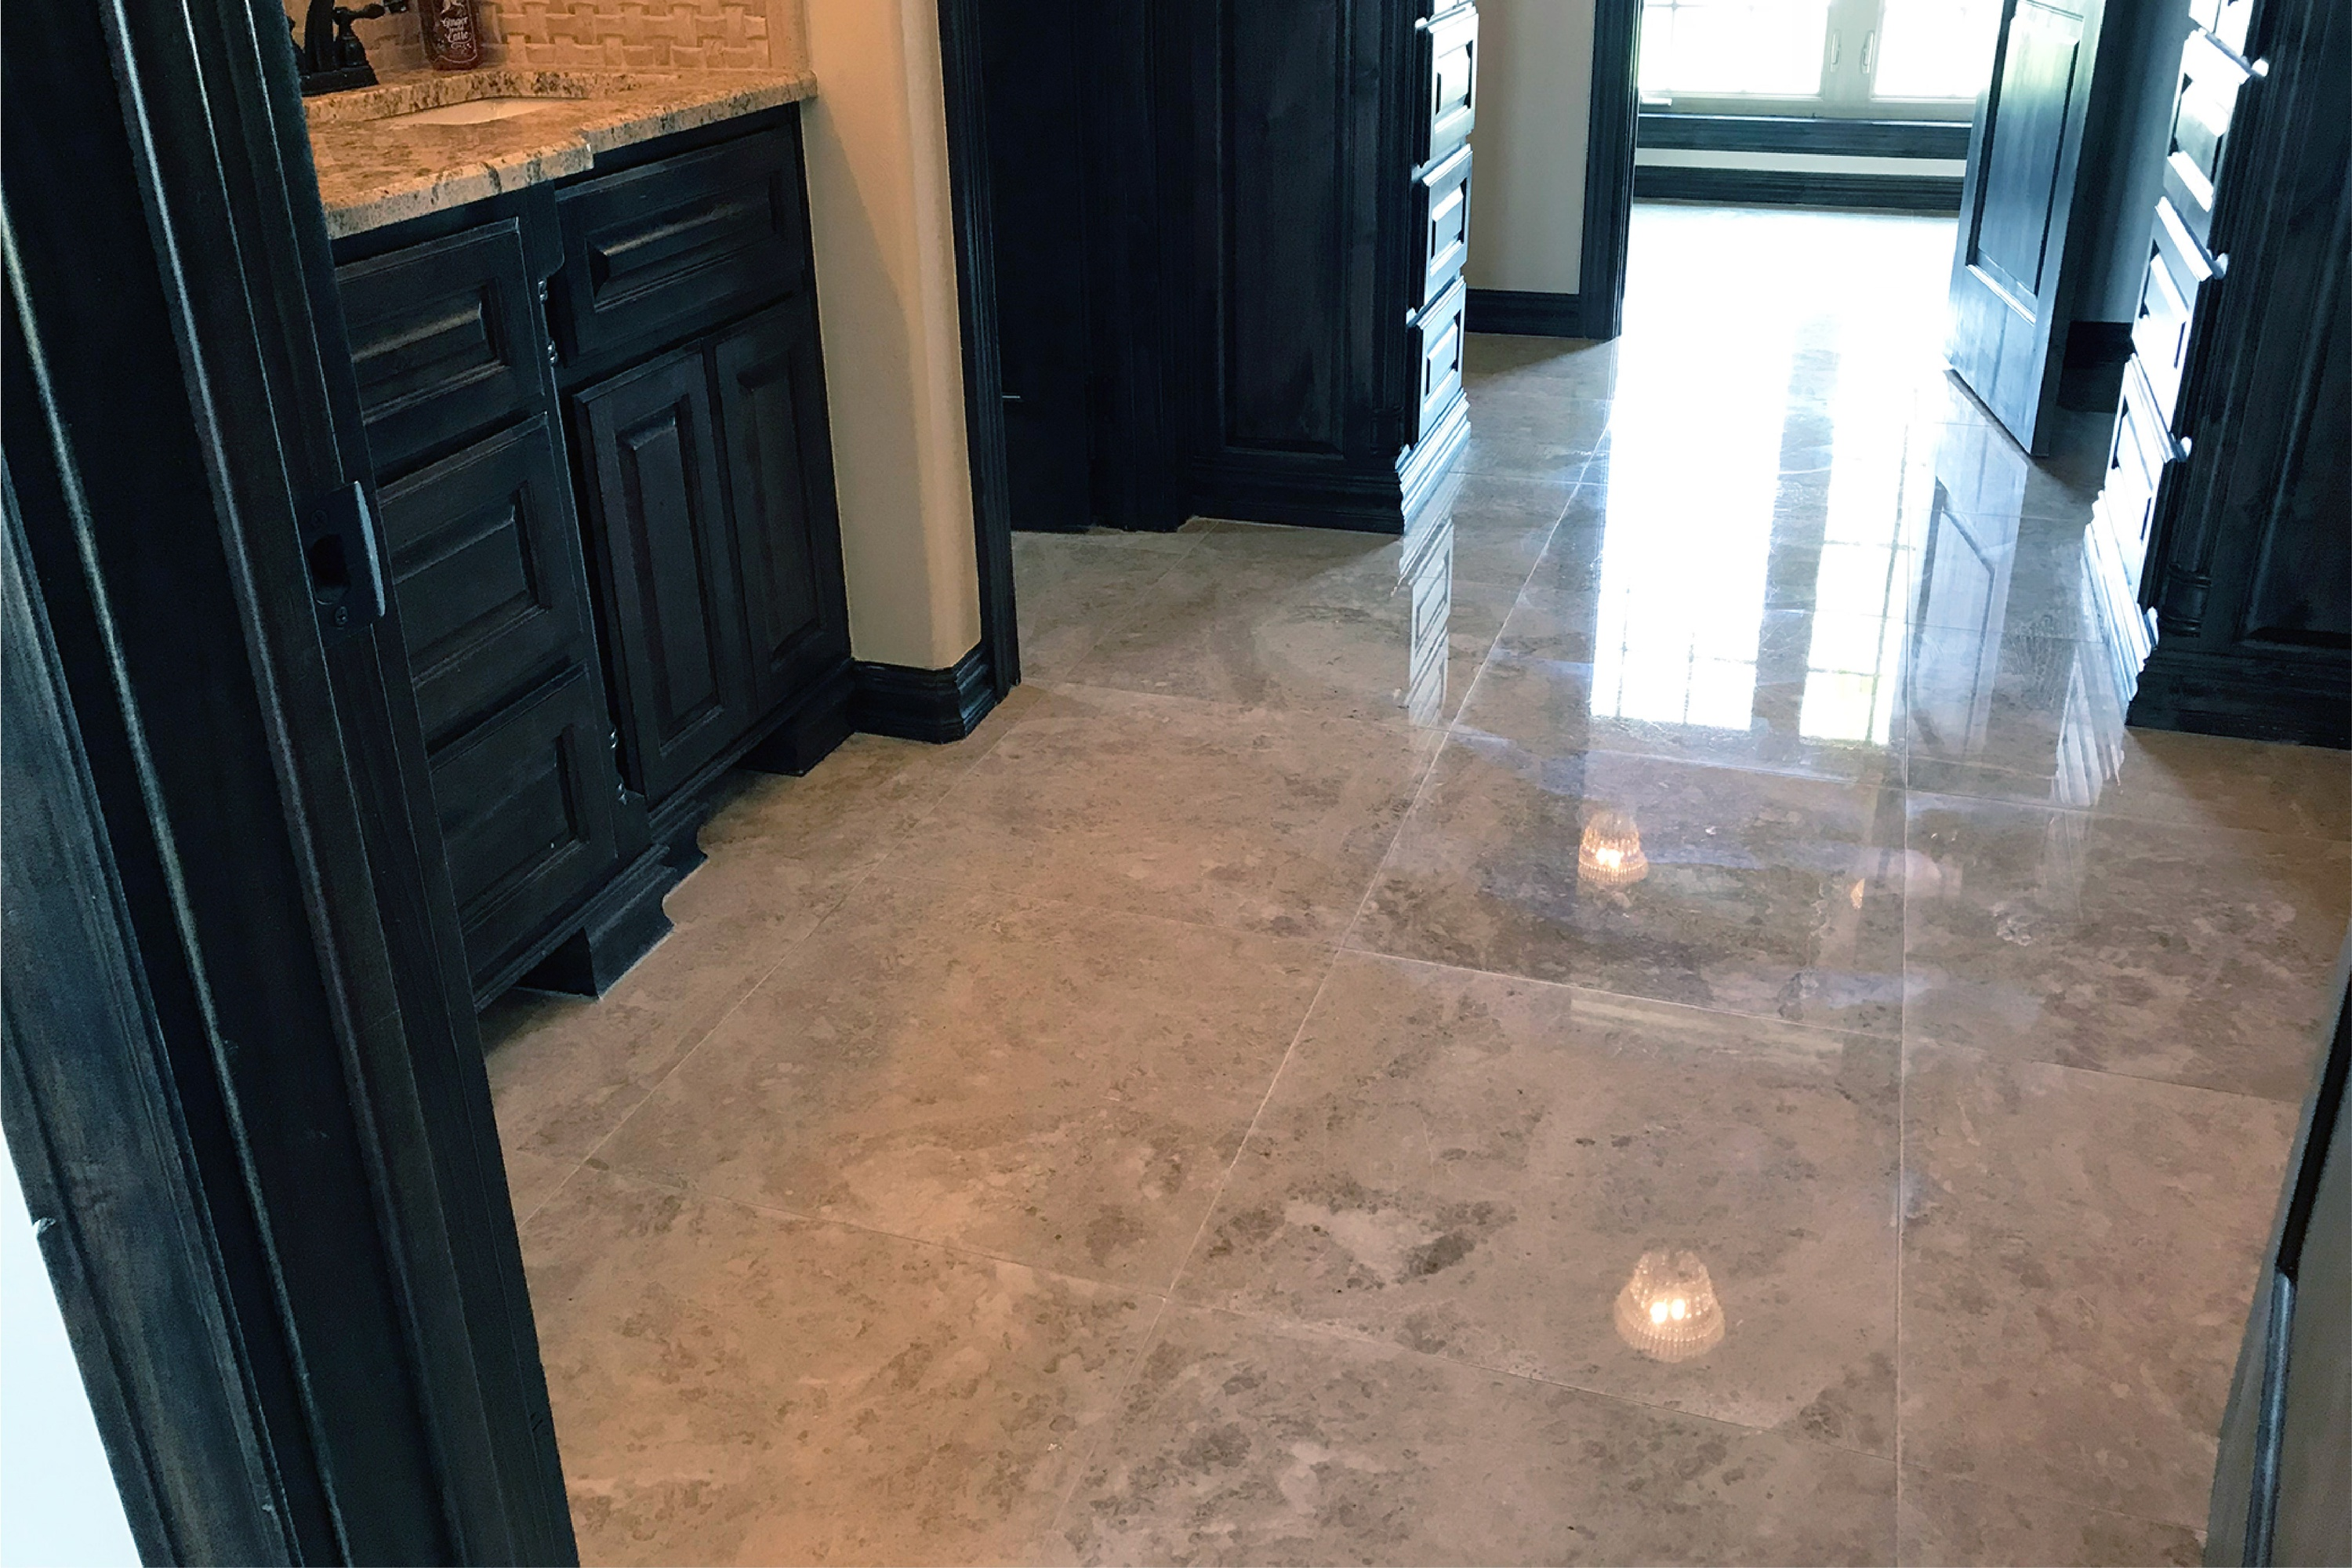 How to Care for Natural Stone in Your Home